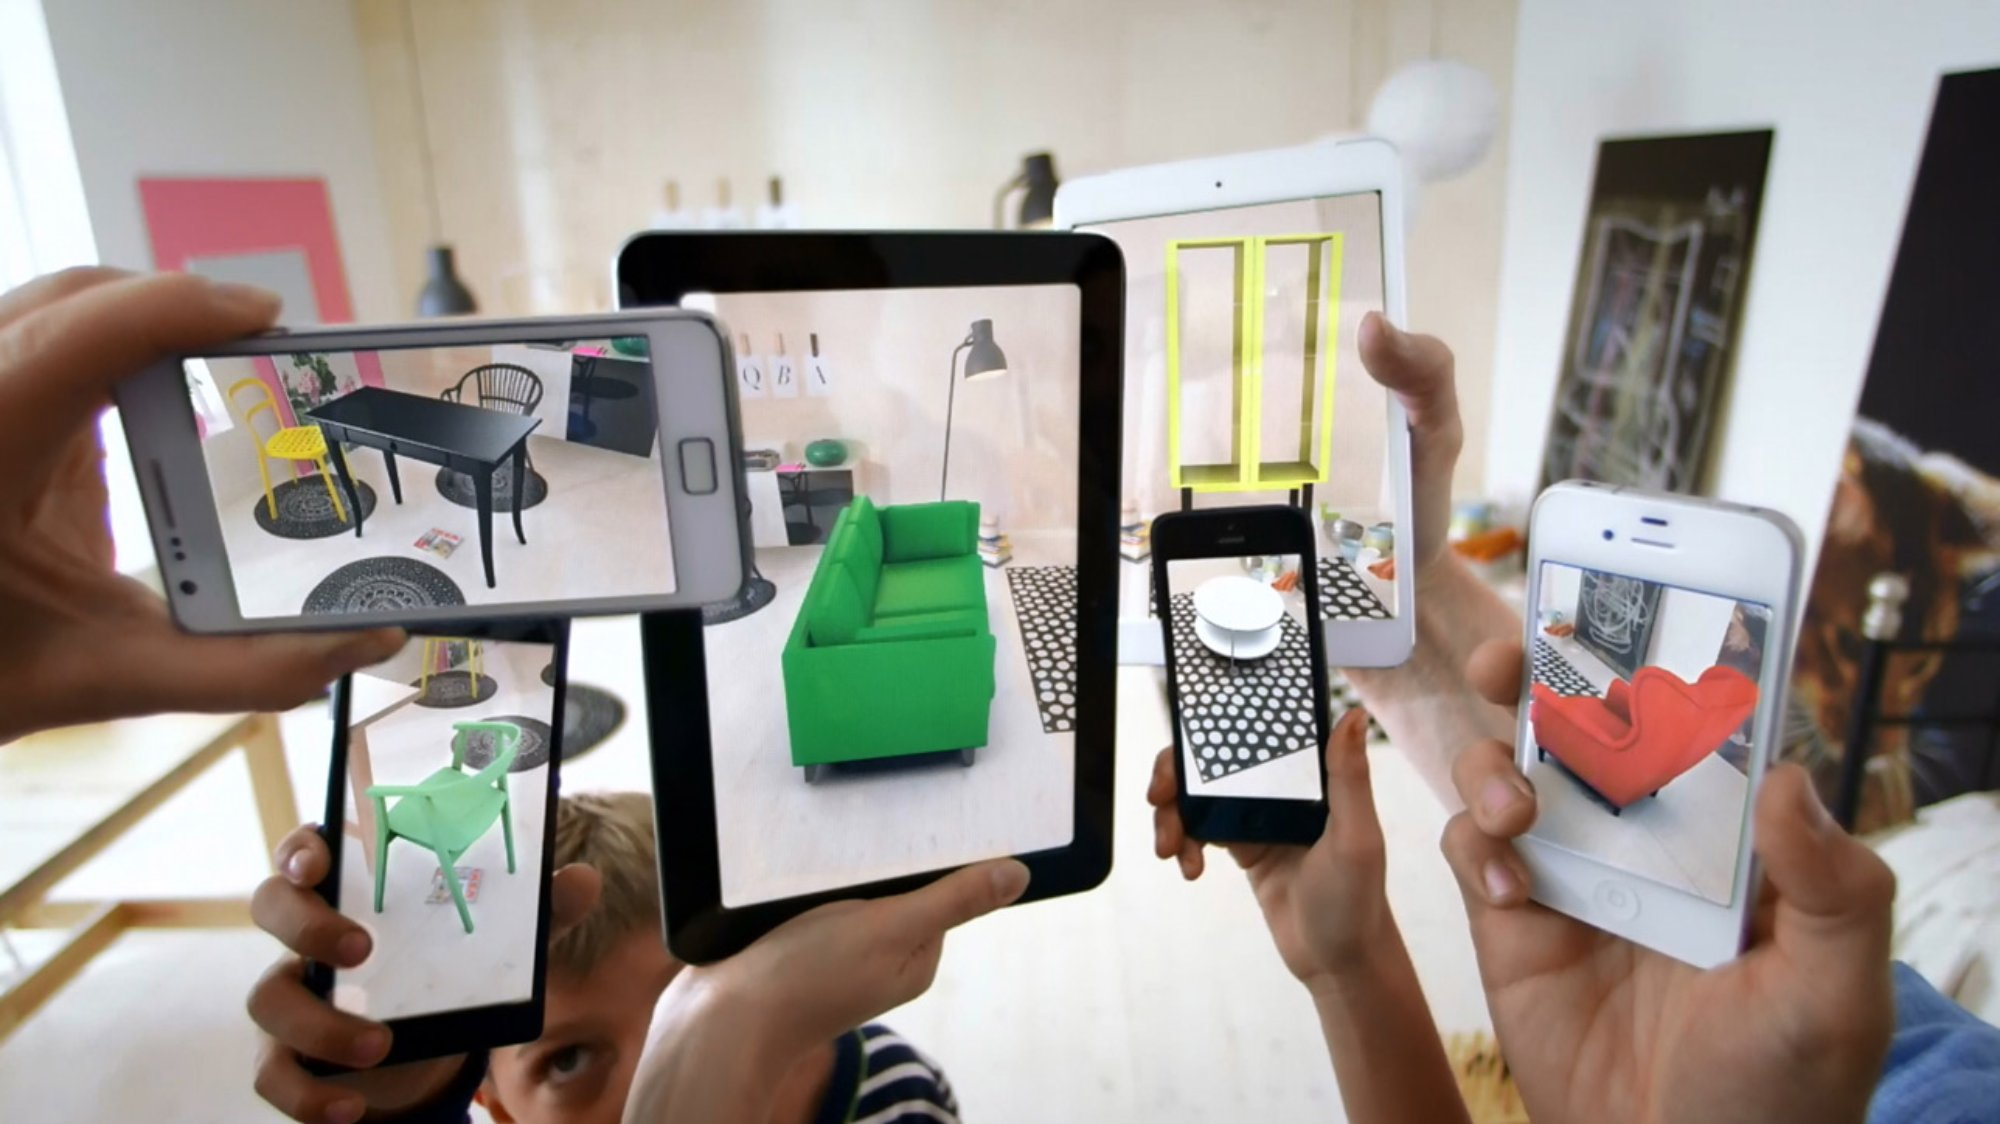 Apple Releases New Augmented Reality Tech for iPhone & iPad